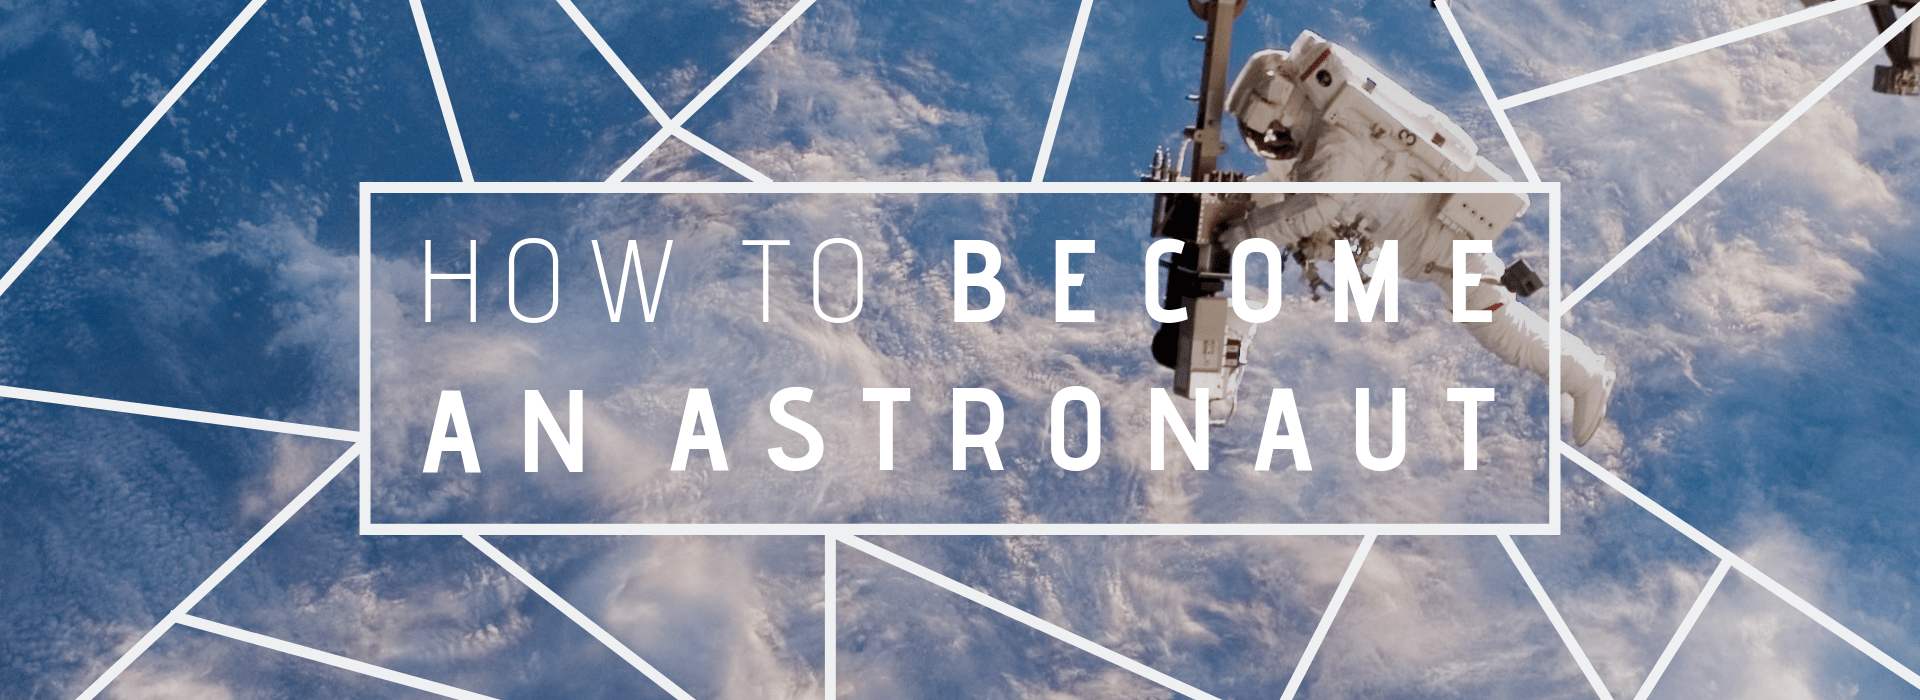 become an astronaut